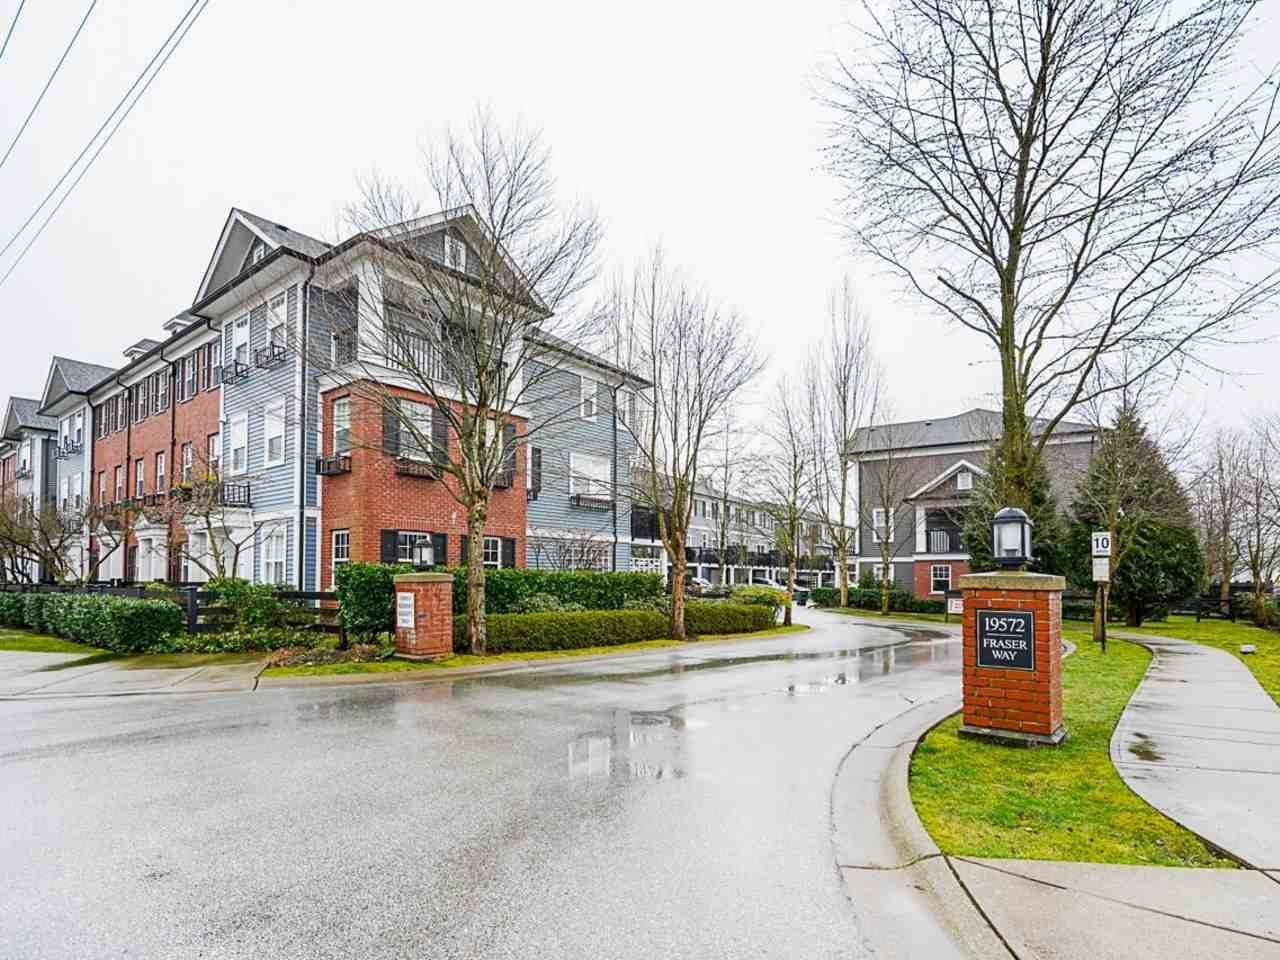 Main Photo: 30 19572 FRASER WAY in Pitt Meadows: South Meadows Townhouse for sale : MLS®# R2540843